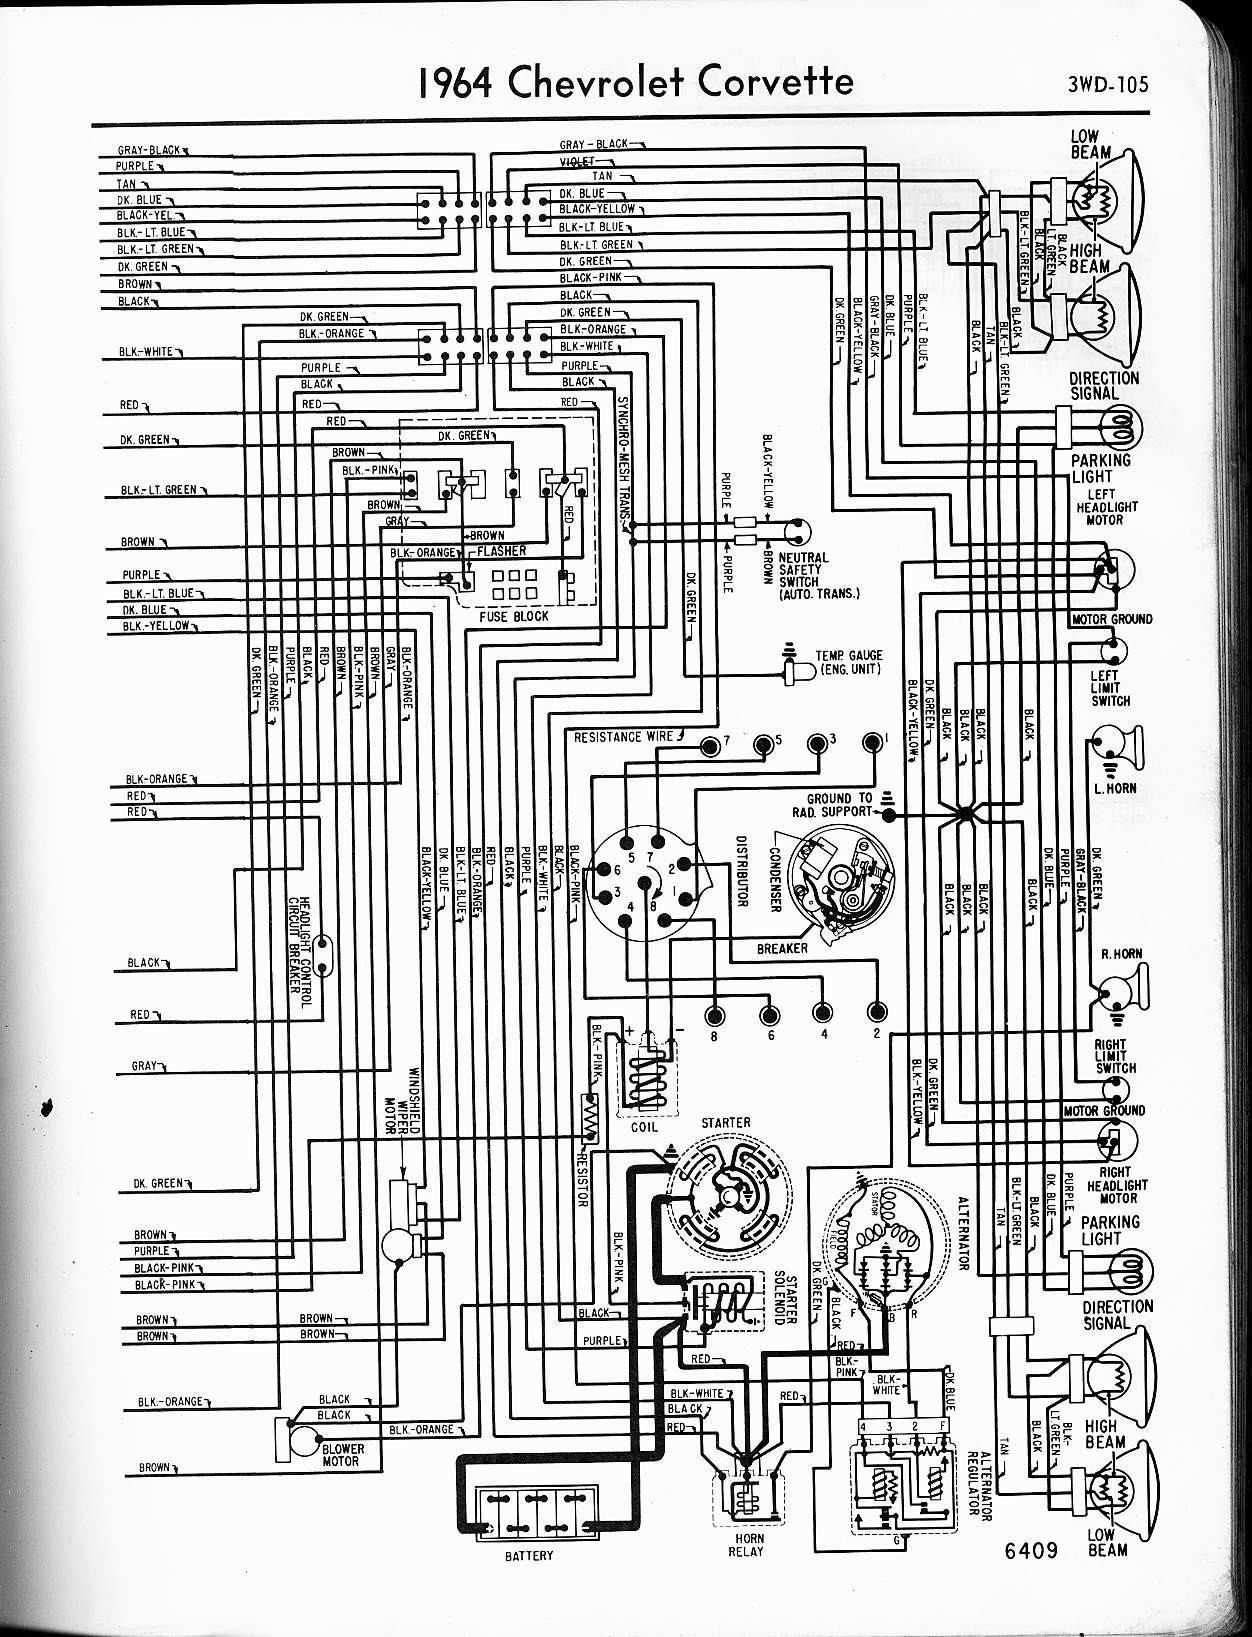 1970 Buick Skylark Wiring Diagram from i0.wp.com